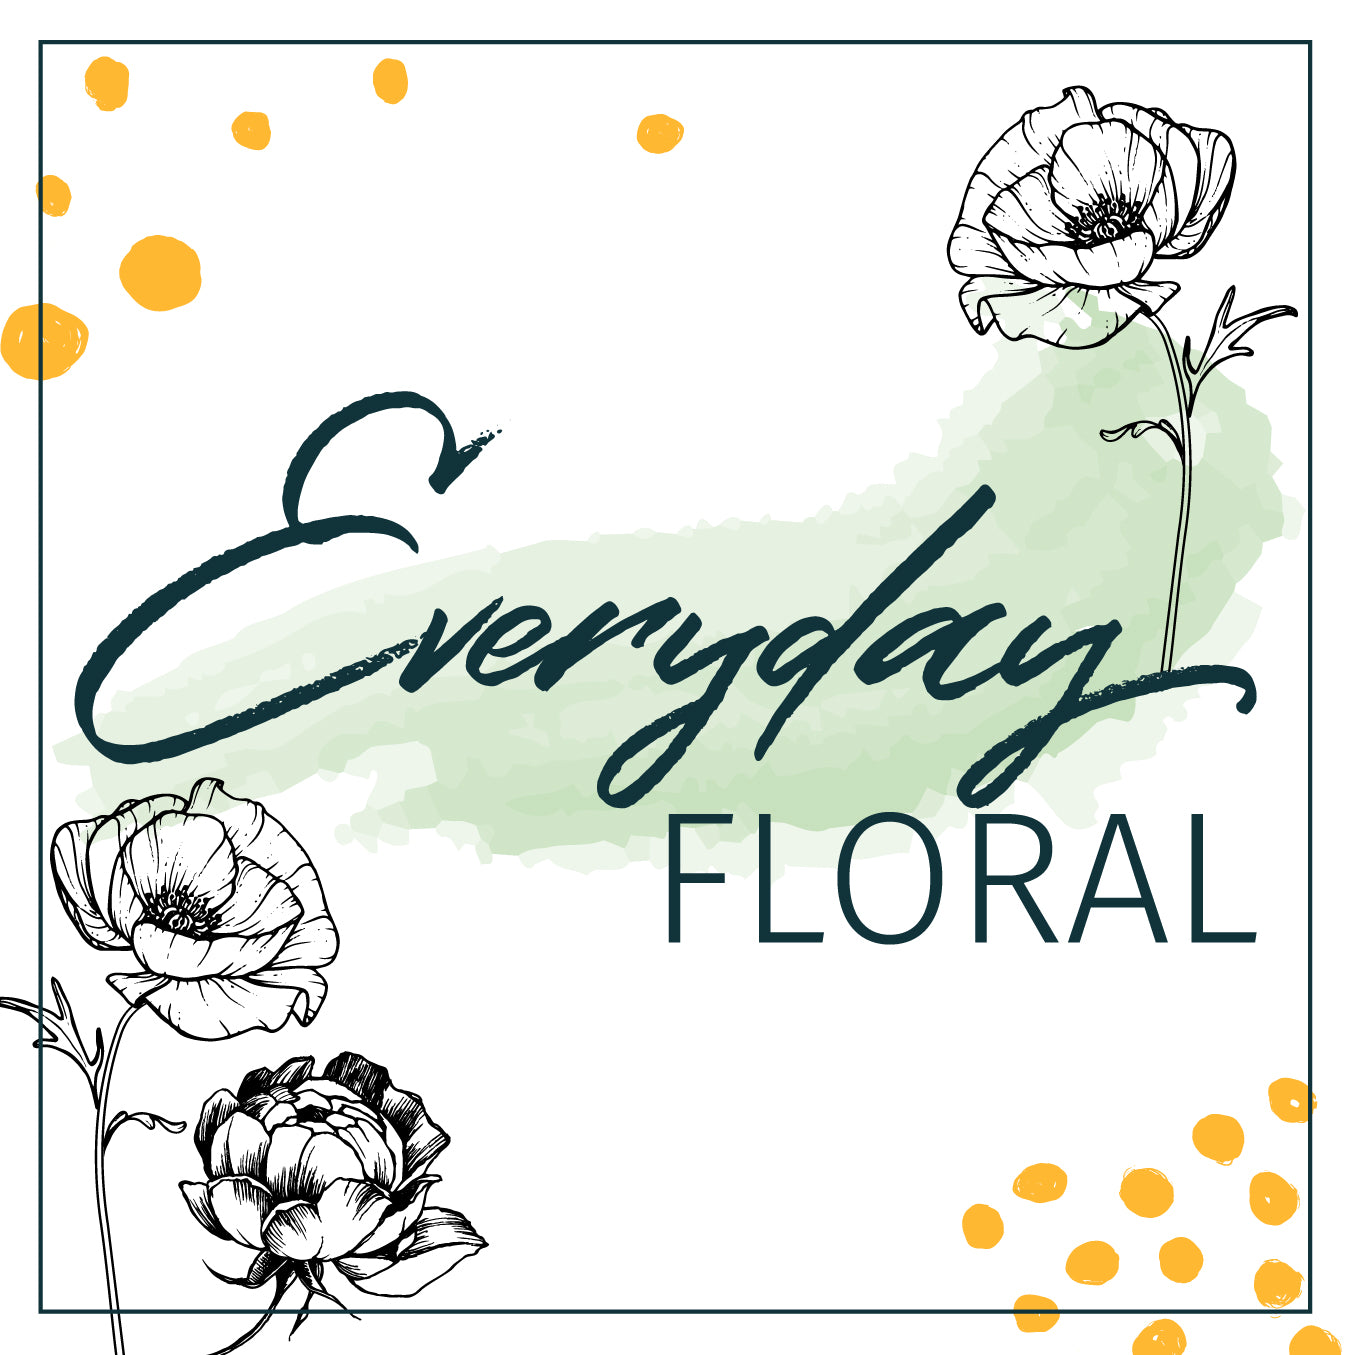 EVERY DAY FLORAL